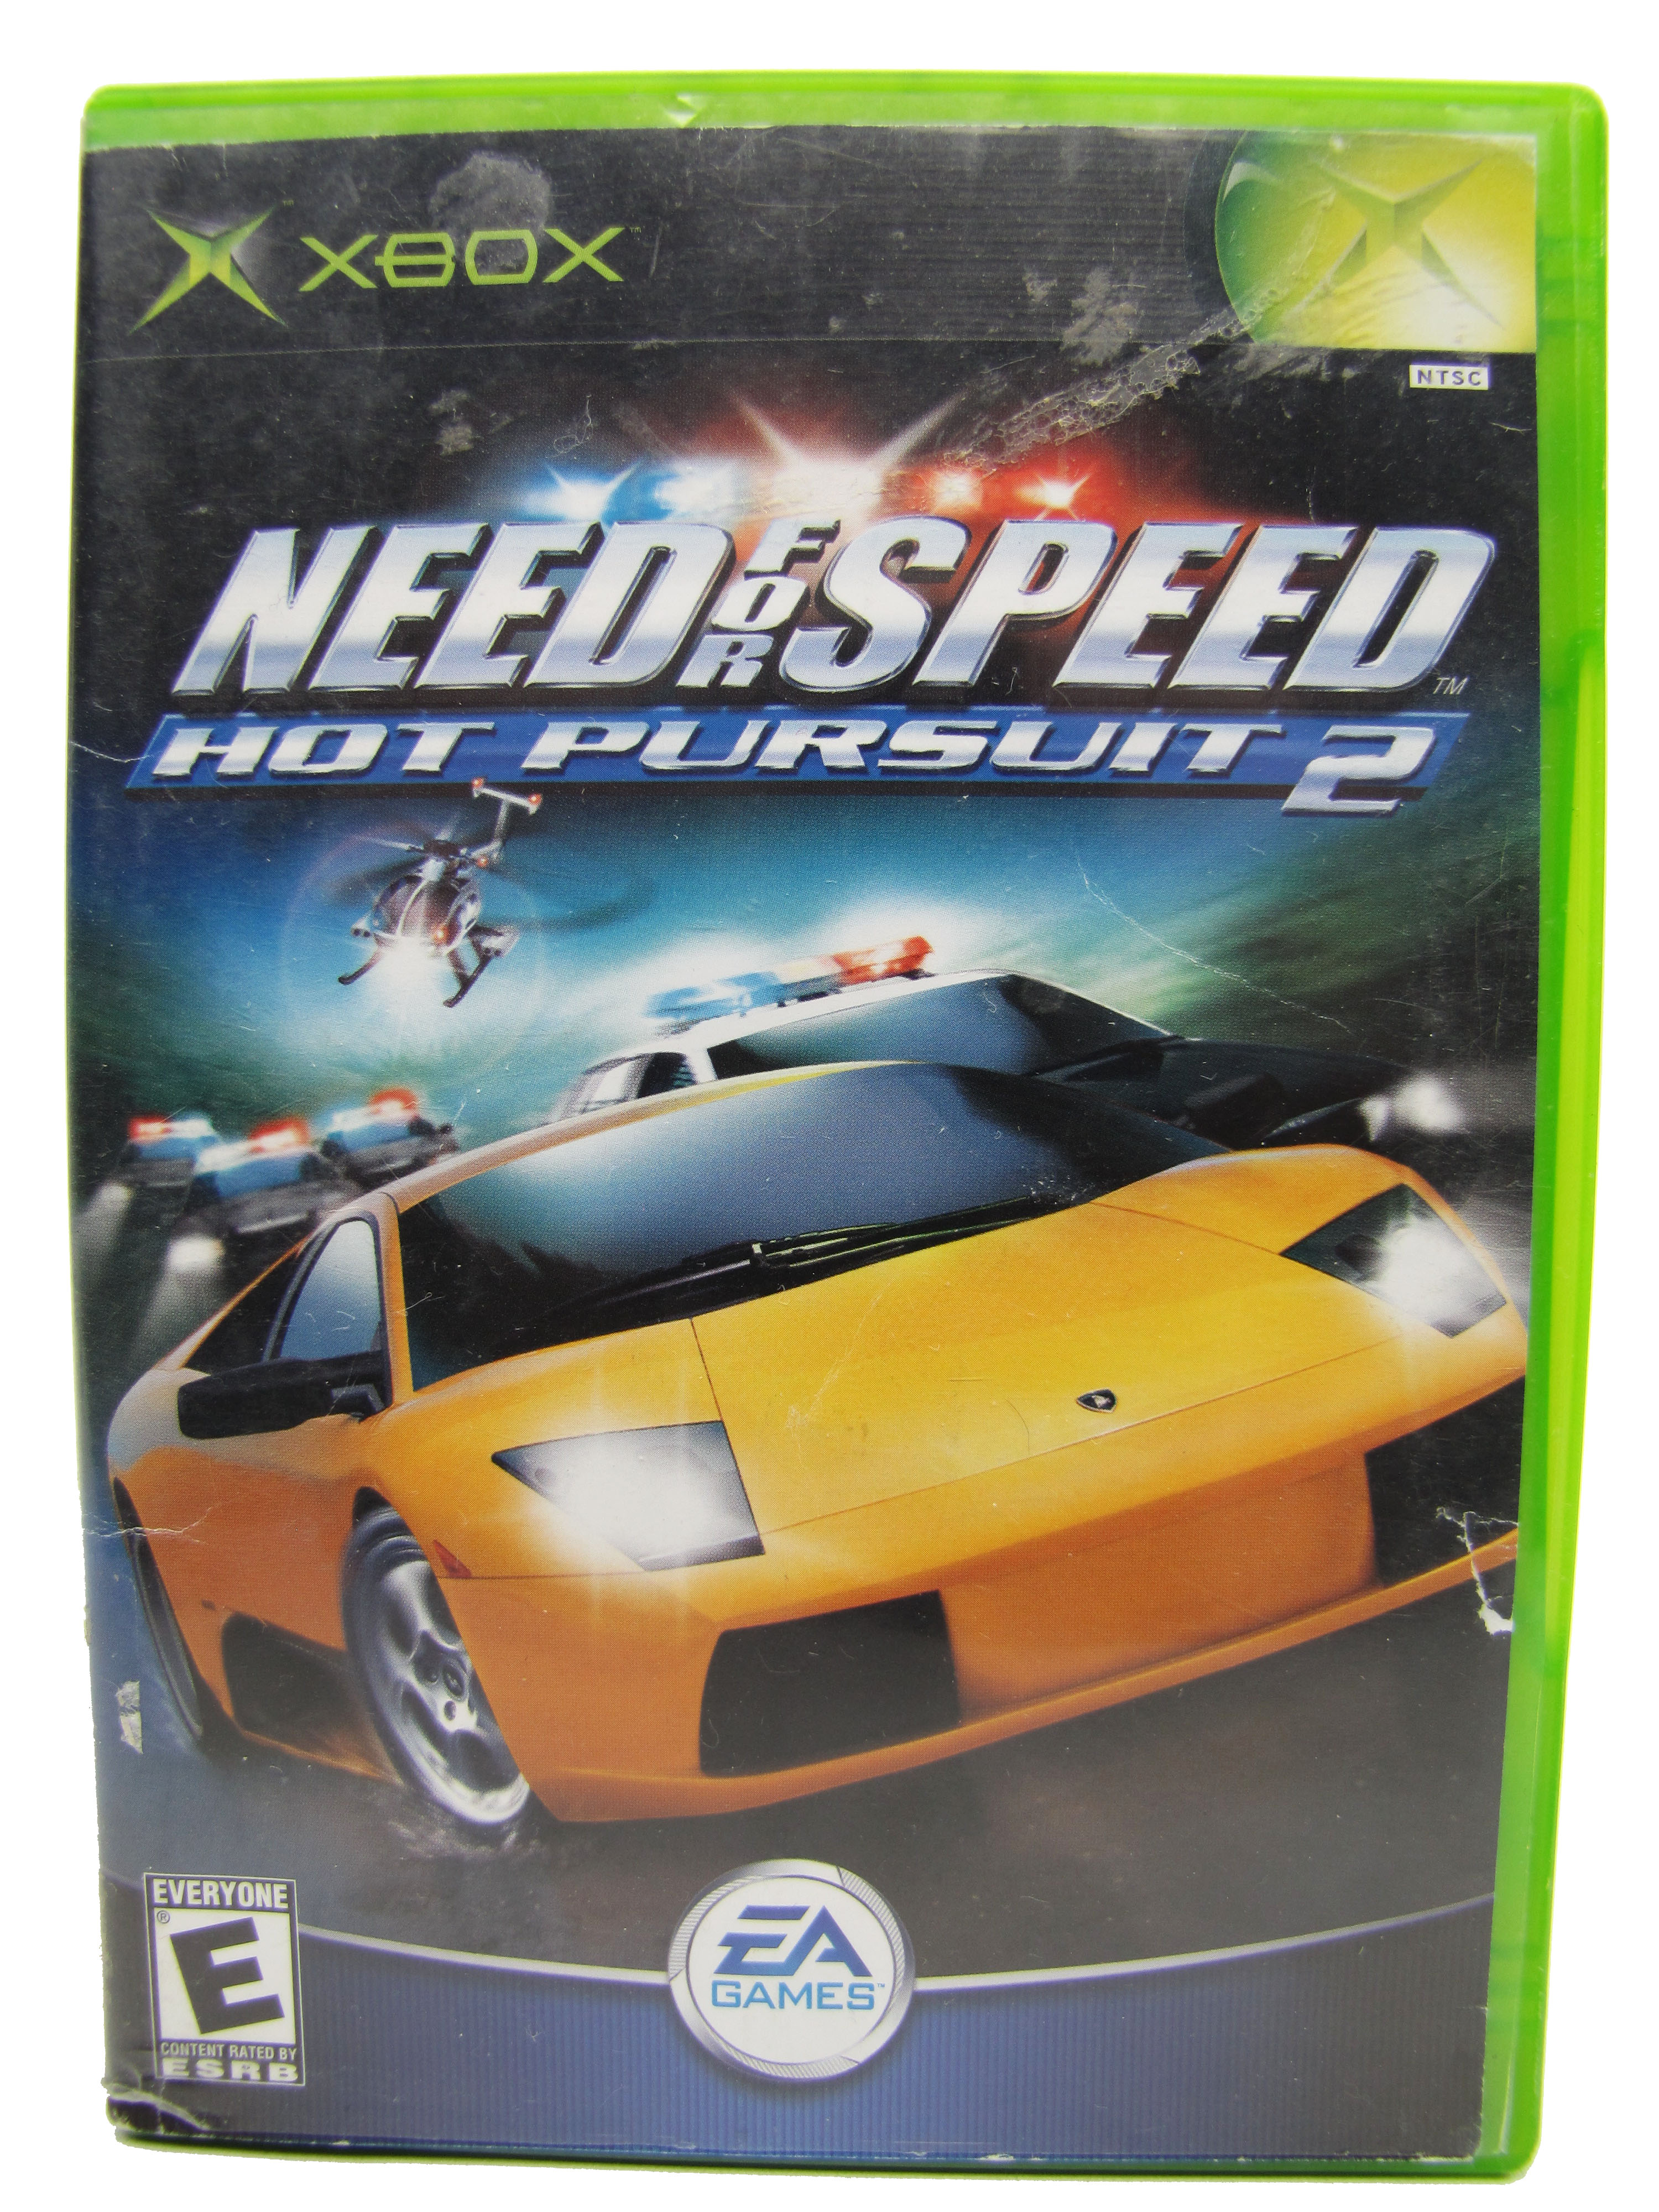 XBOX Need for Speed: Hot Pursuit 2 Complete - 2002